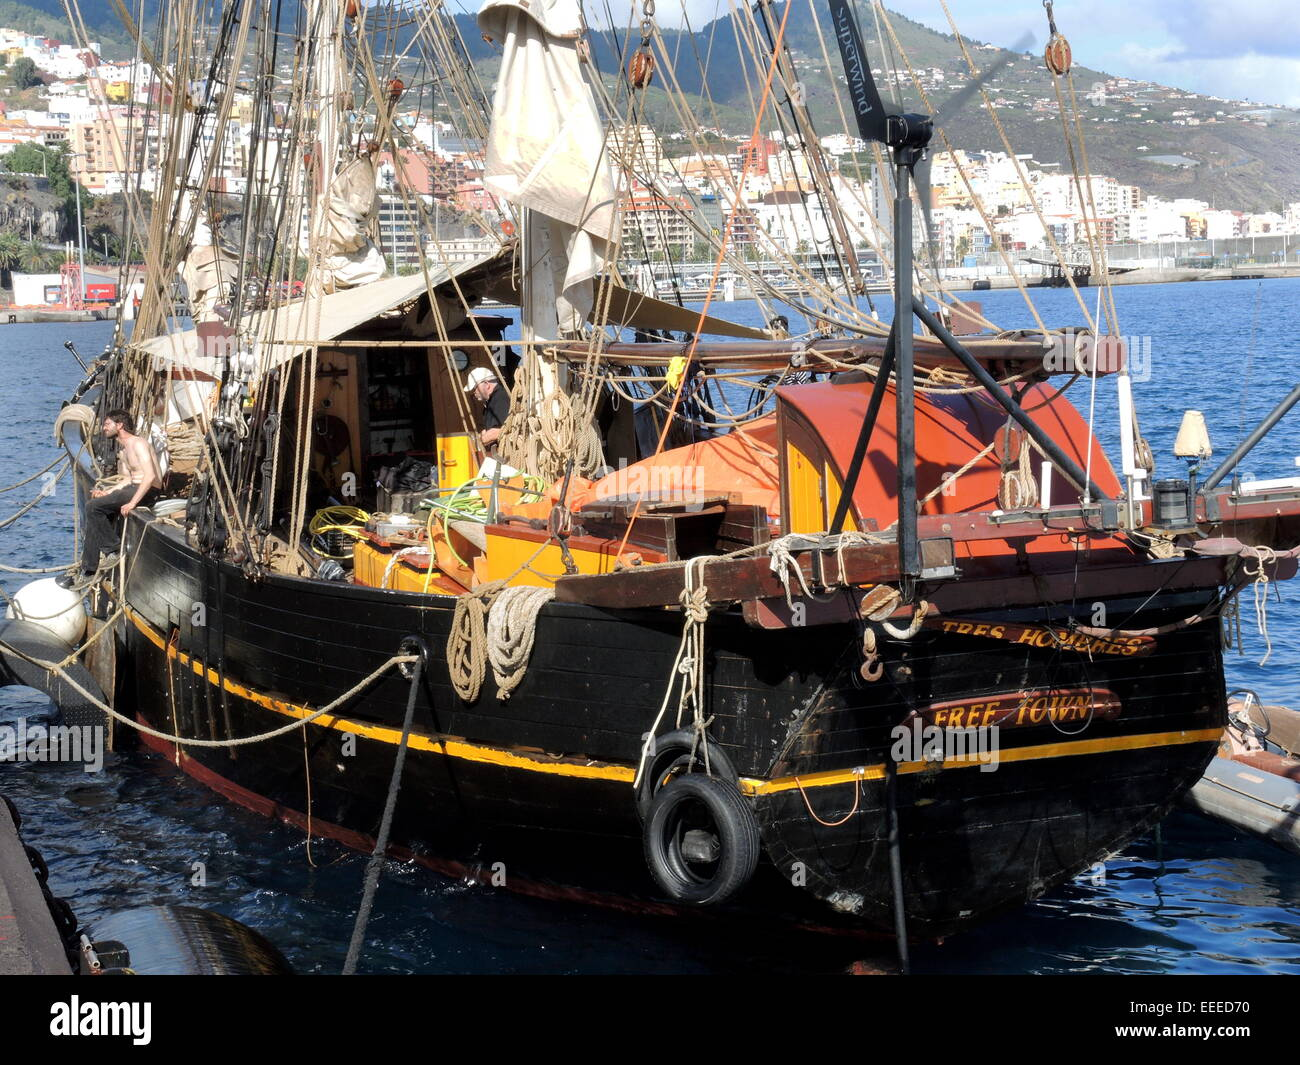 The engineless Sailing Cargo Ship 'Tres hombres' in the harbour of the city of Santa Cruz on the canarian - Stock Image